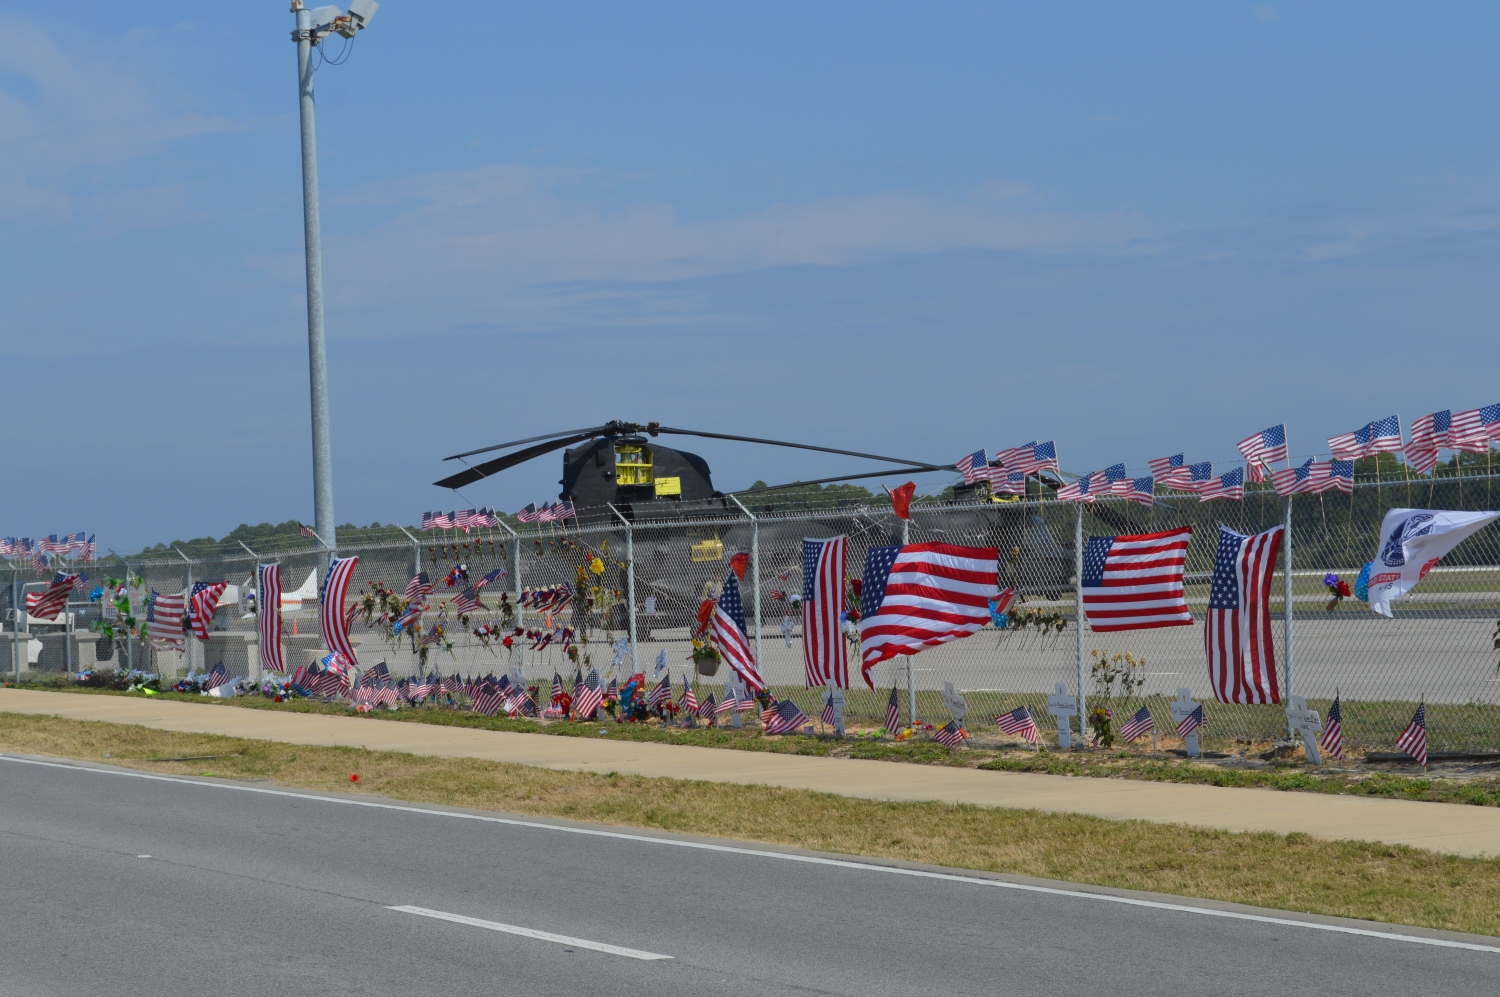 Memorial for the seven Marines from the Special Operations Regiment and four U.S. Soldiers of the 1-224th Assault Helicopter Battalion who perished March 10, 2015 when their UH-60 Blackhawk helicopter crashed on a training flight.